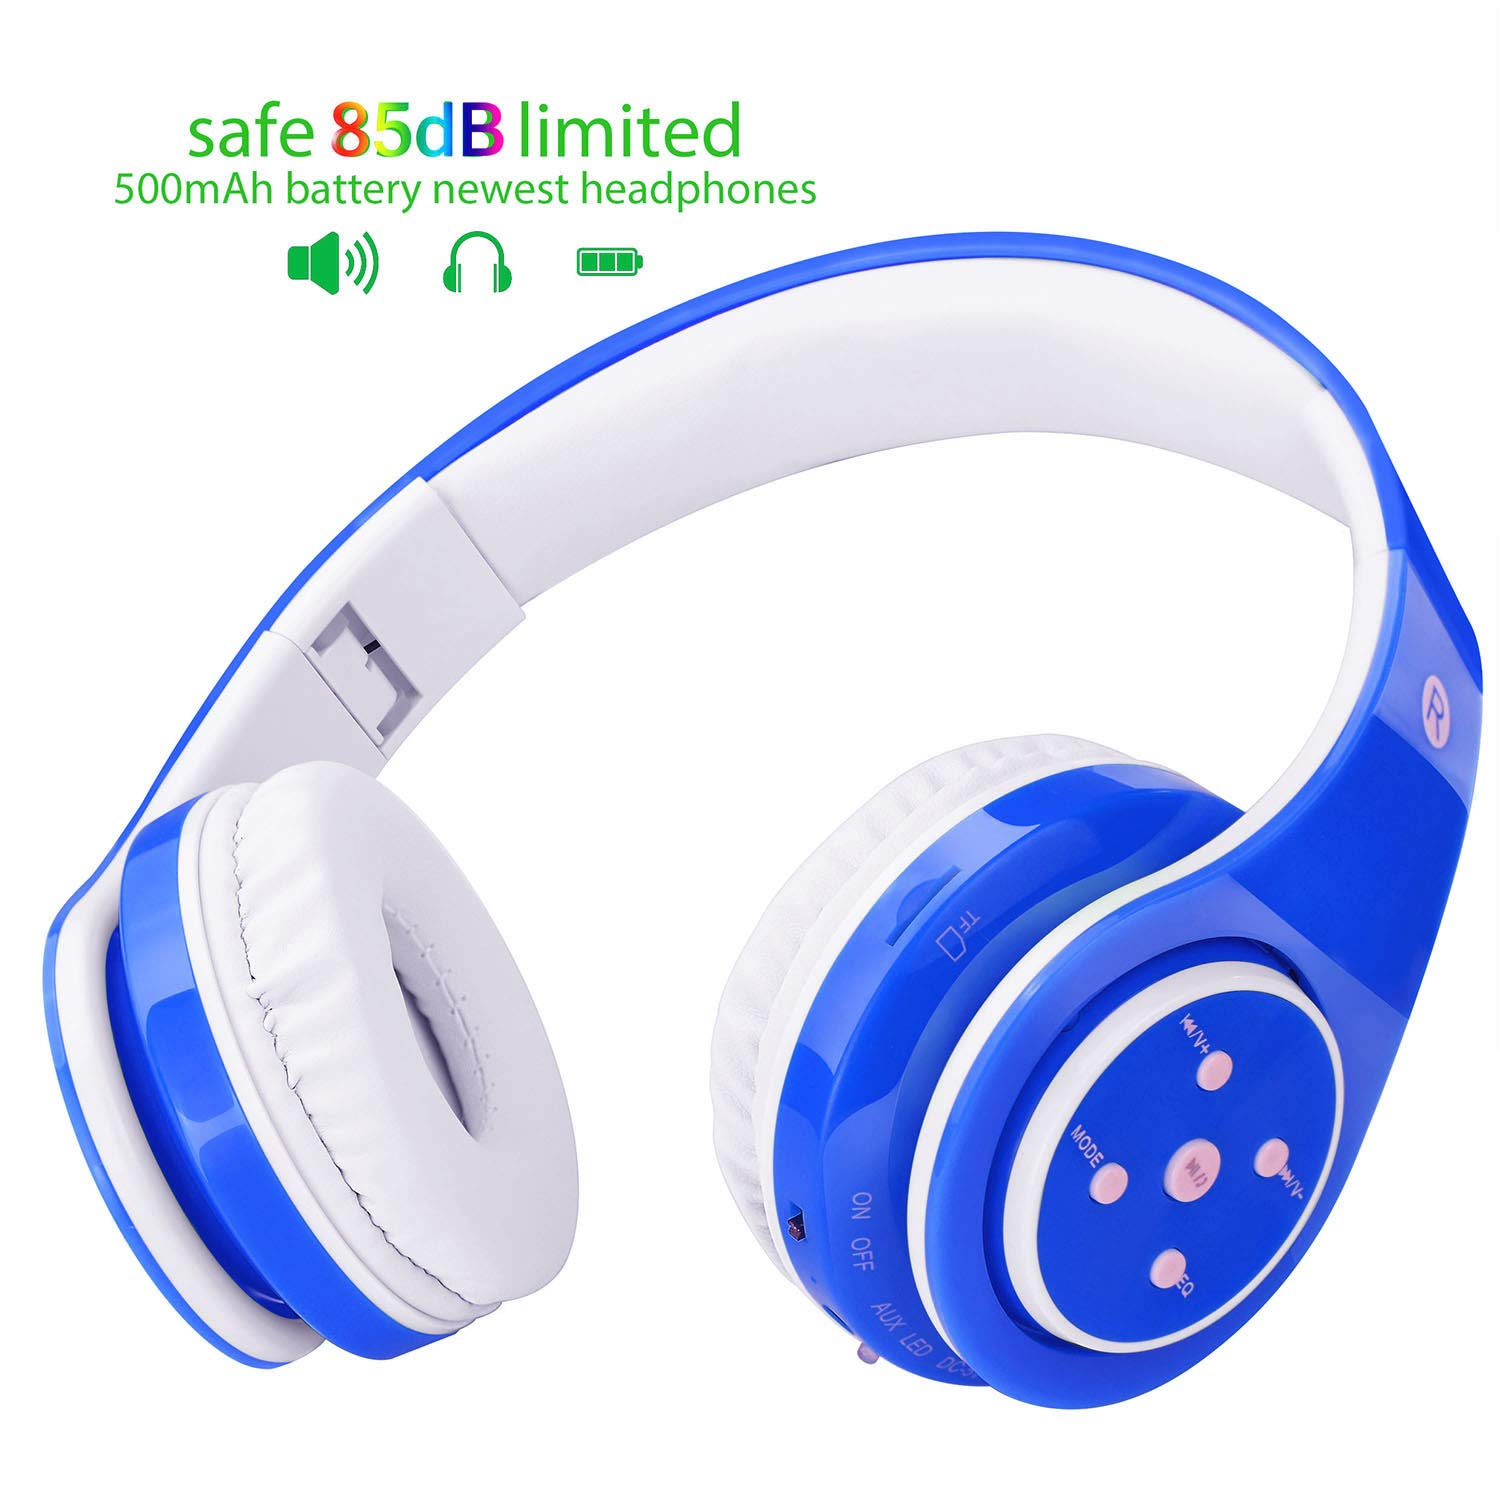 Wireless Headphones for Kids, 85db Limited, 500mAh Battery up to 6-8 Hours Play, Over-Ear and Build-in Mic Bluetooth Headphones for Boys Girls, 3.5mm Audio Jack Cable for PC Tablet Cellphone(Blue)